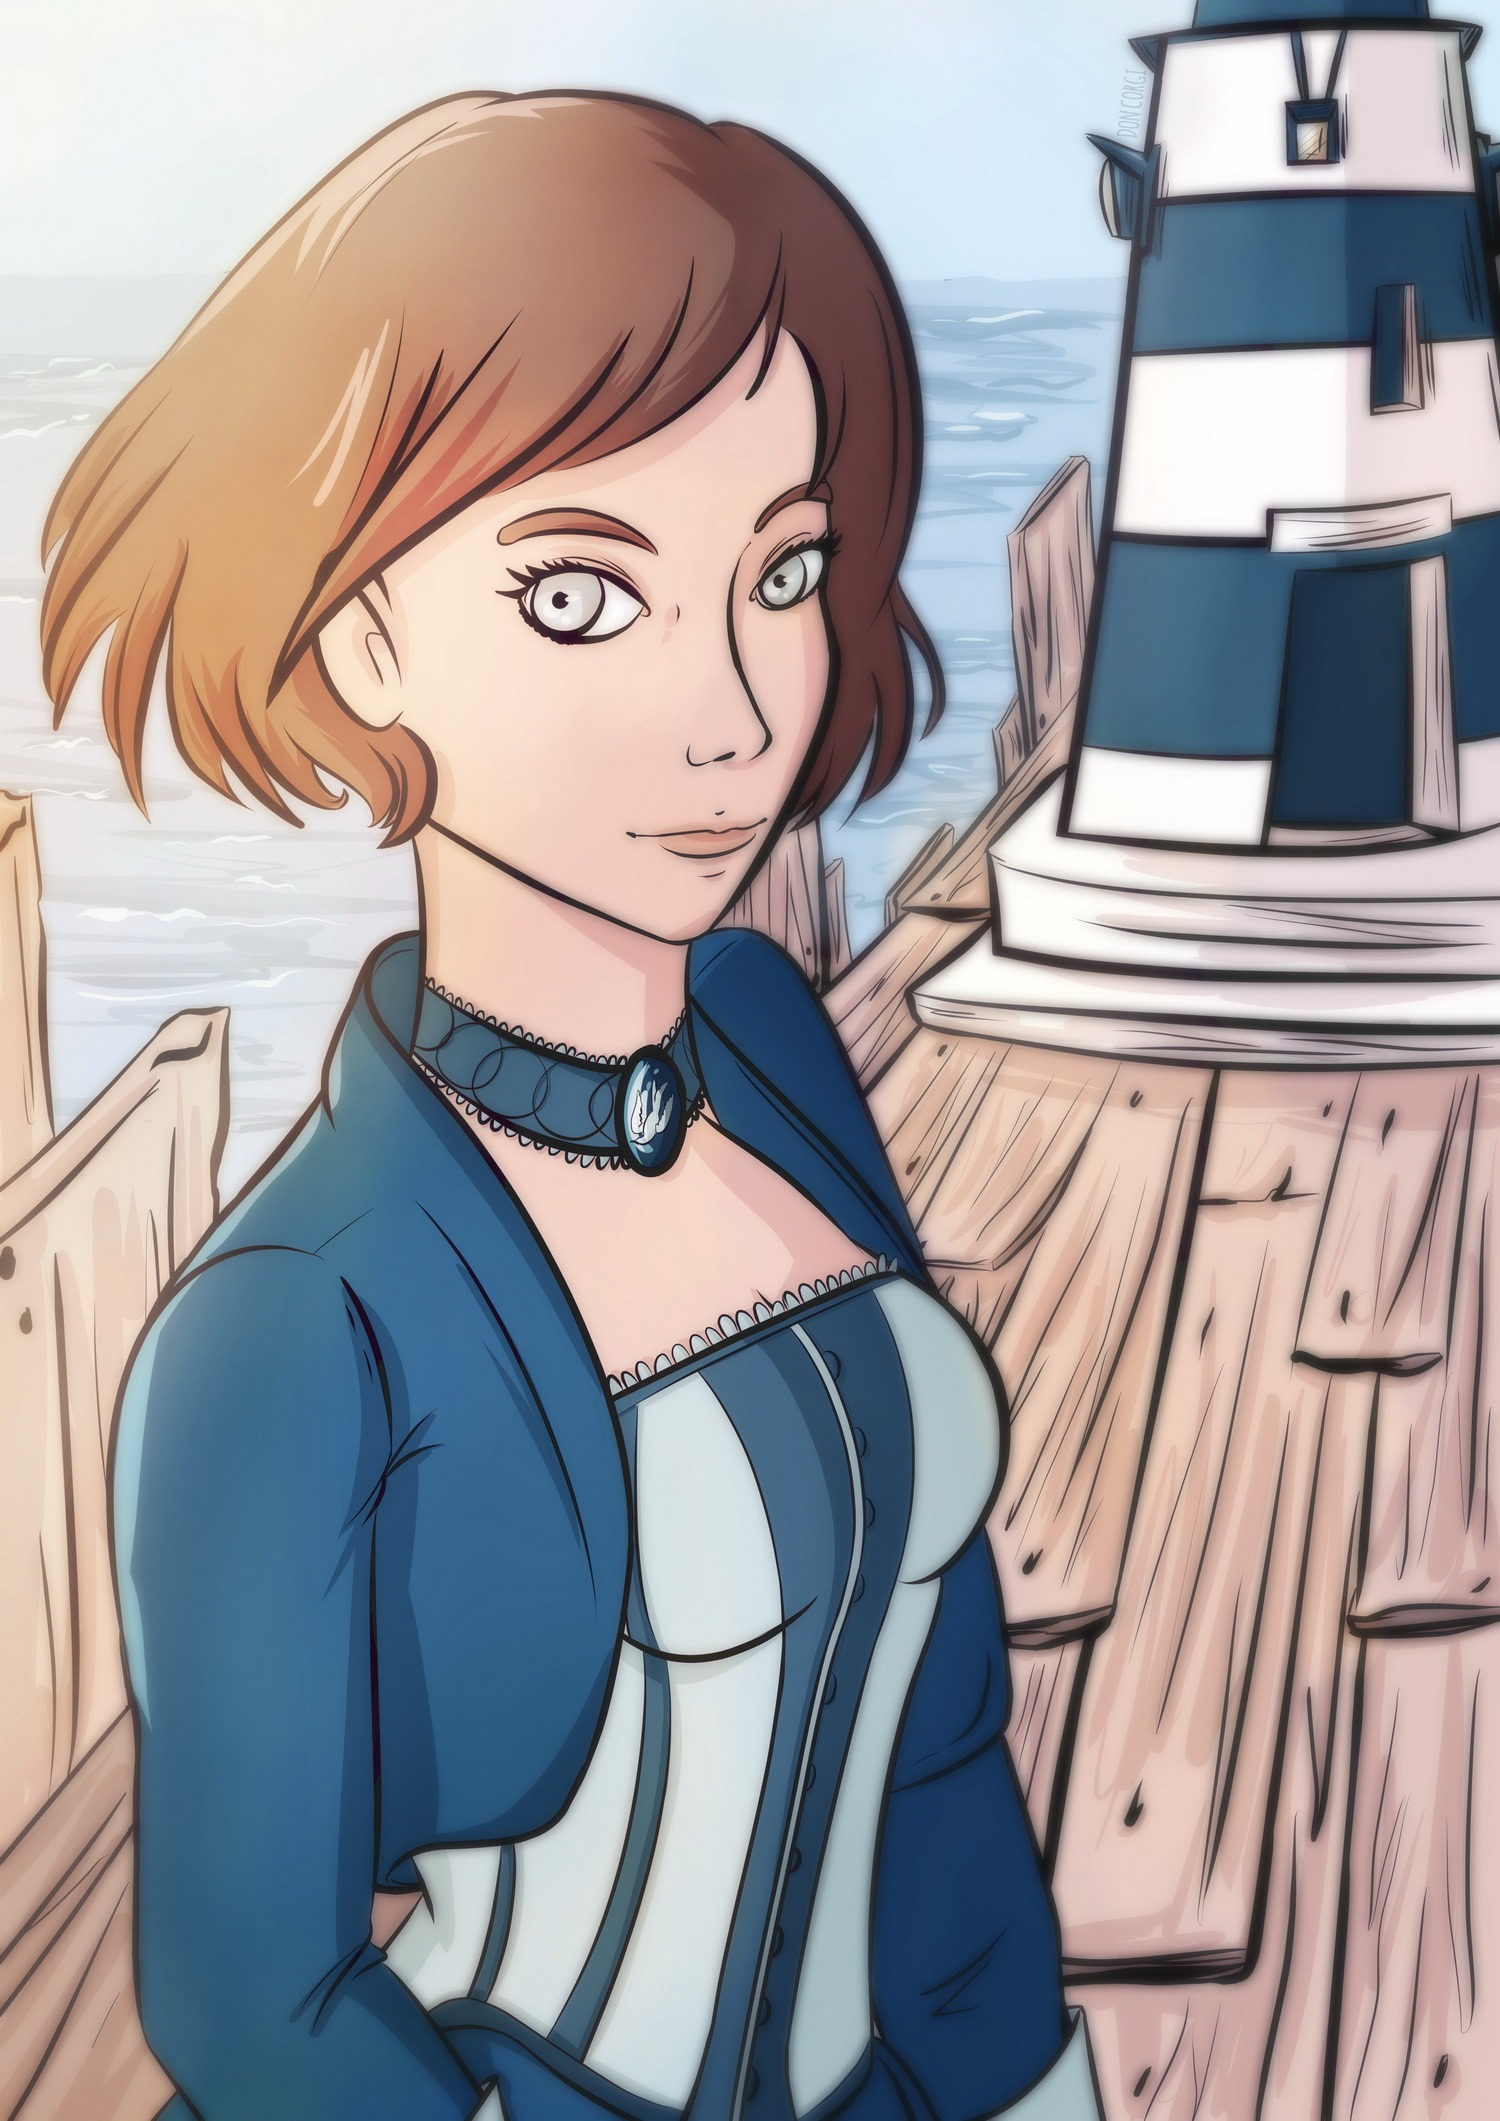 bioshock infinite, elizabeth, character, female, portrait, woman, sexy, cute